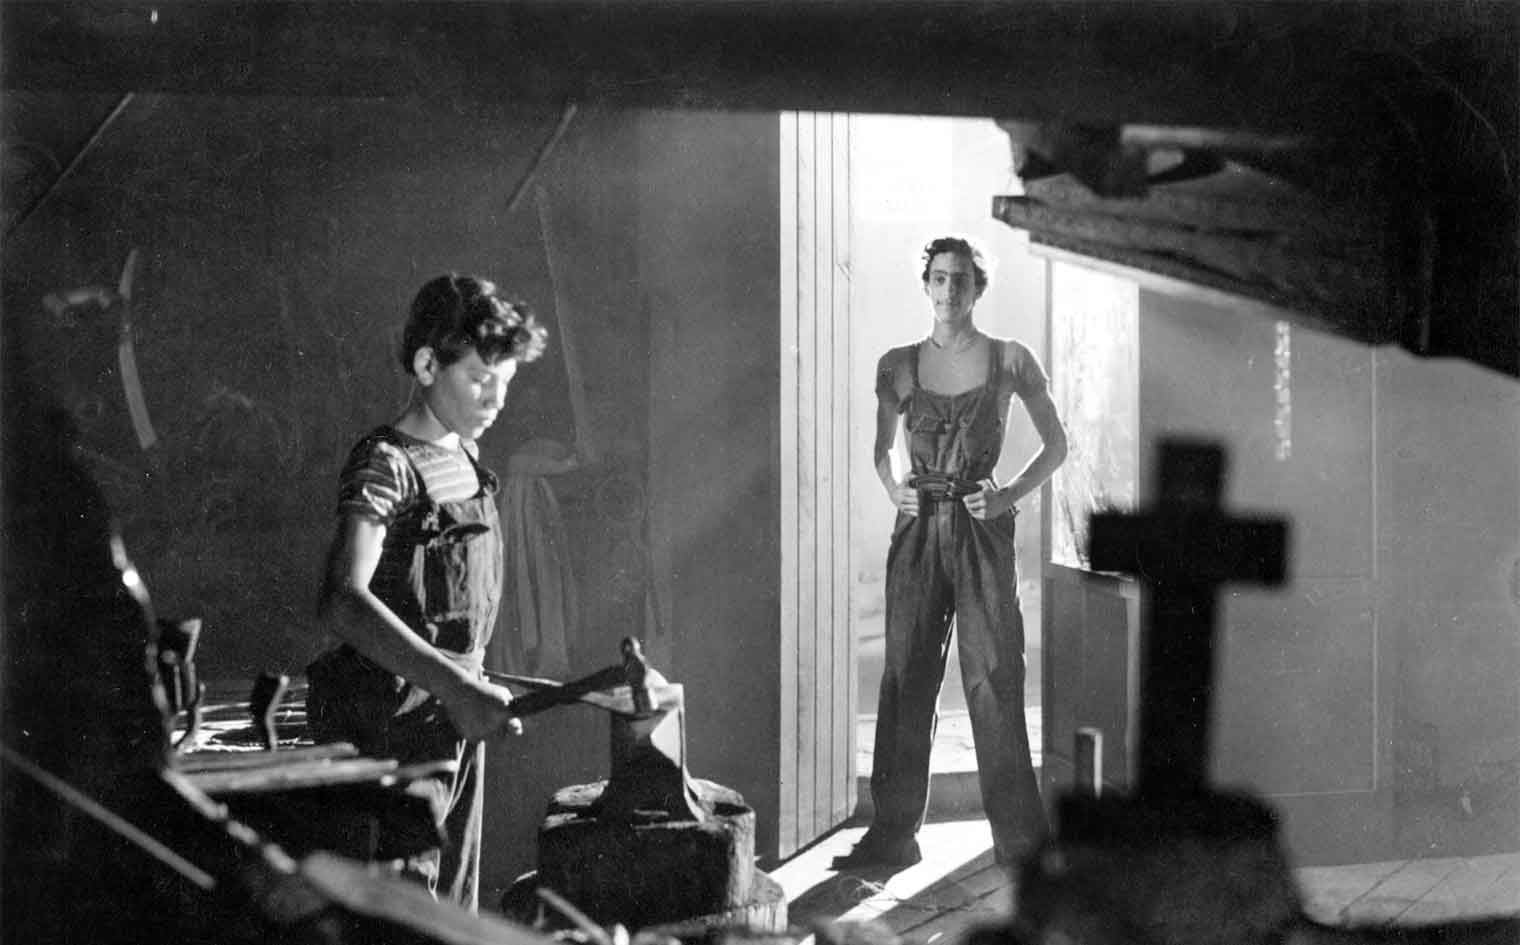 Olvidados, Los (1950) aka The Young and the Damned Directed by Luis BuÒuel